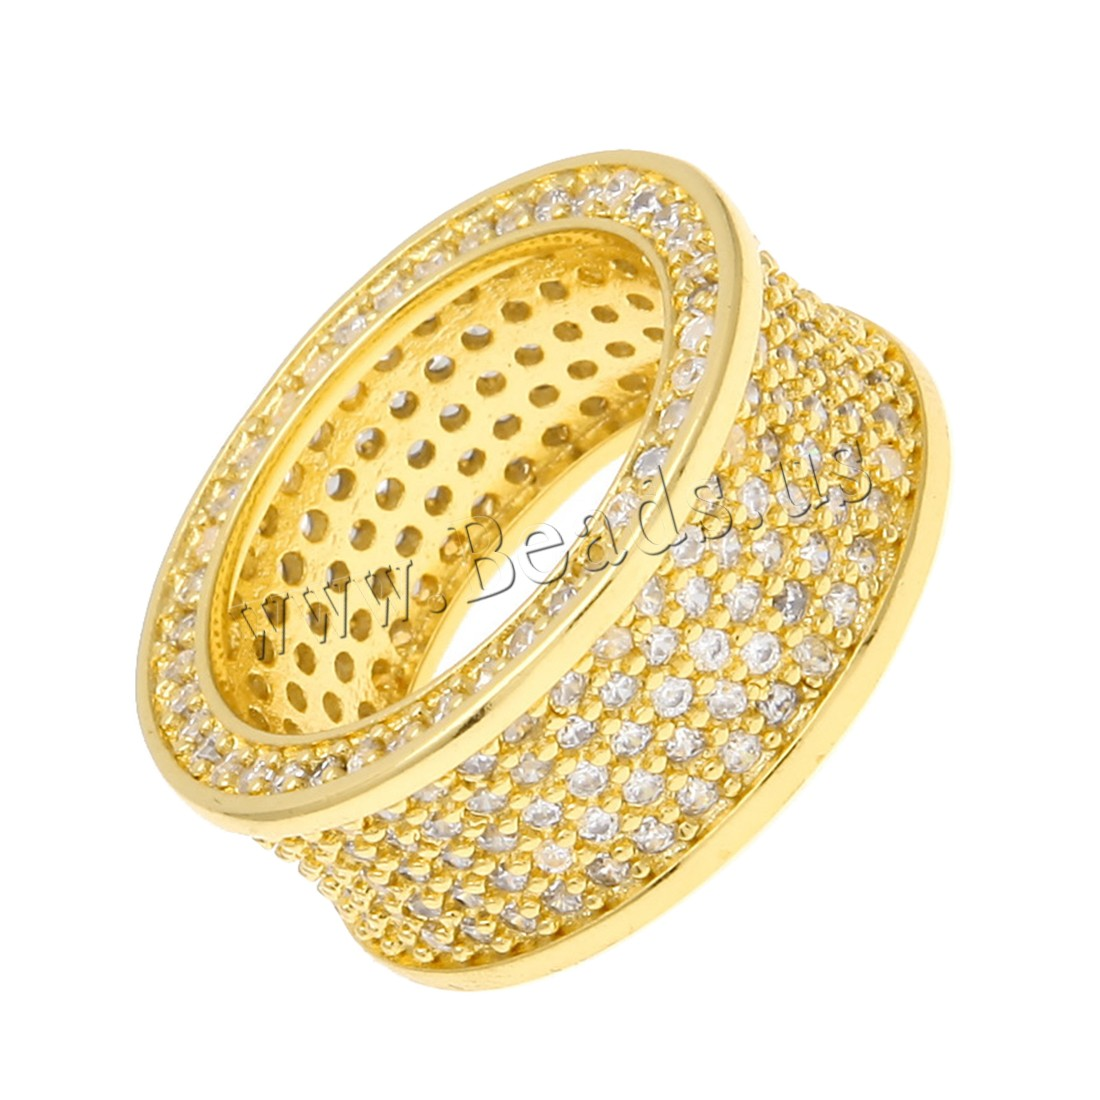 Buy Cubic Zircon Brass Finger Ring Stainless Steel plated Unisex & different size choice & cubic zirconia colors choice nickel lead & cadmium free 10x27mm Sold PC